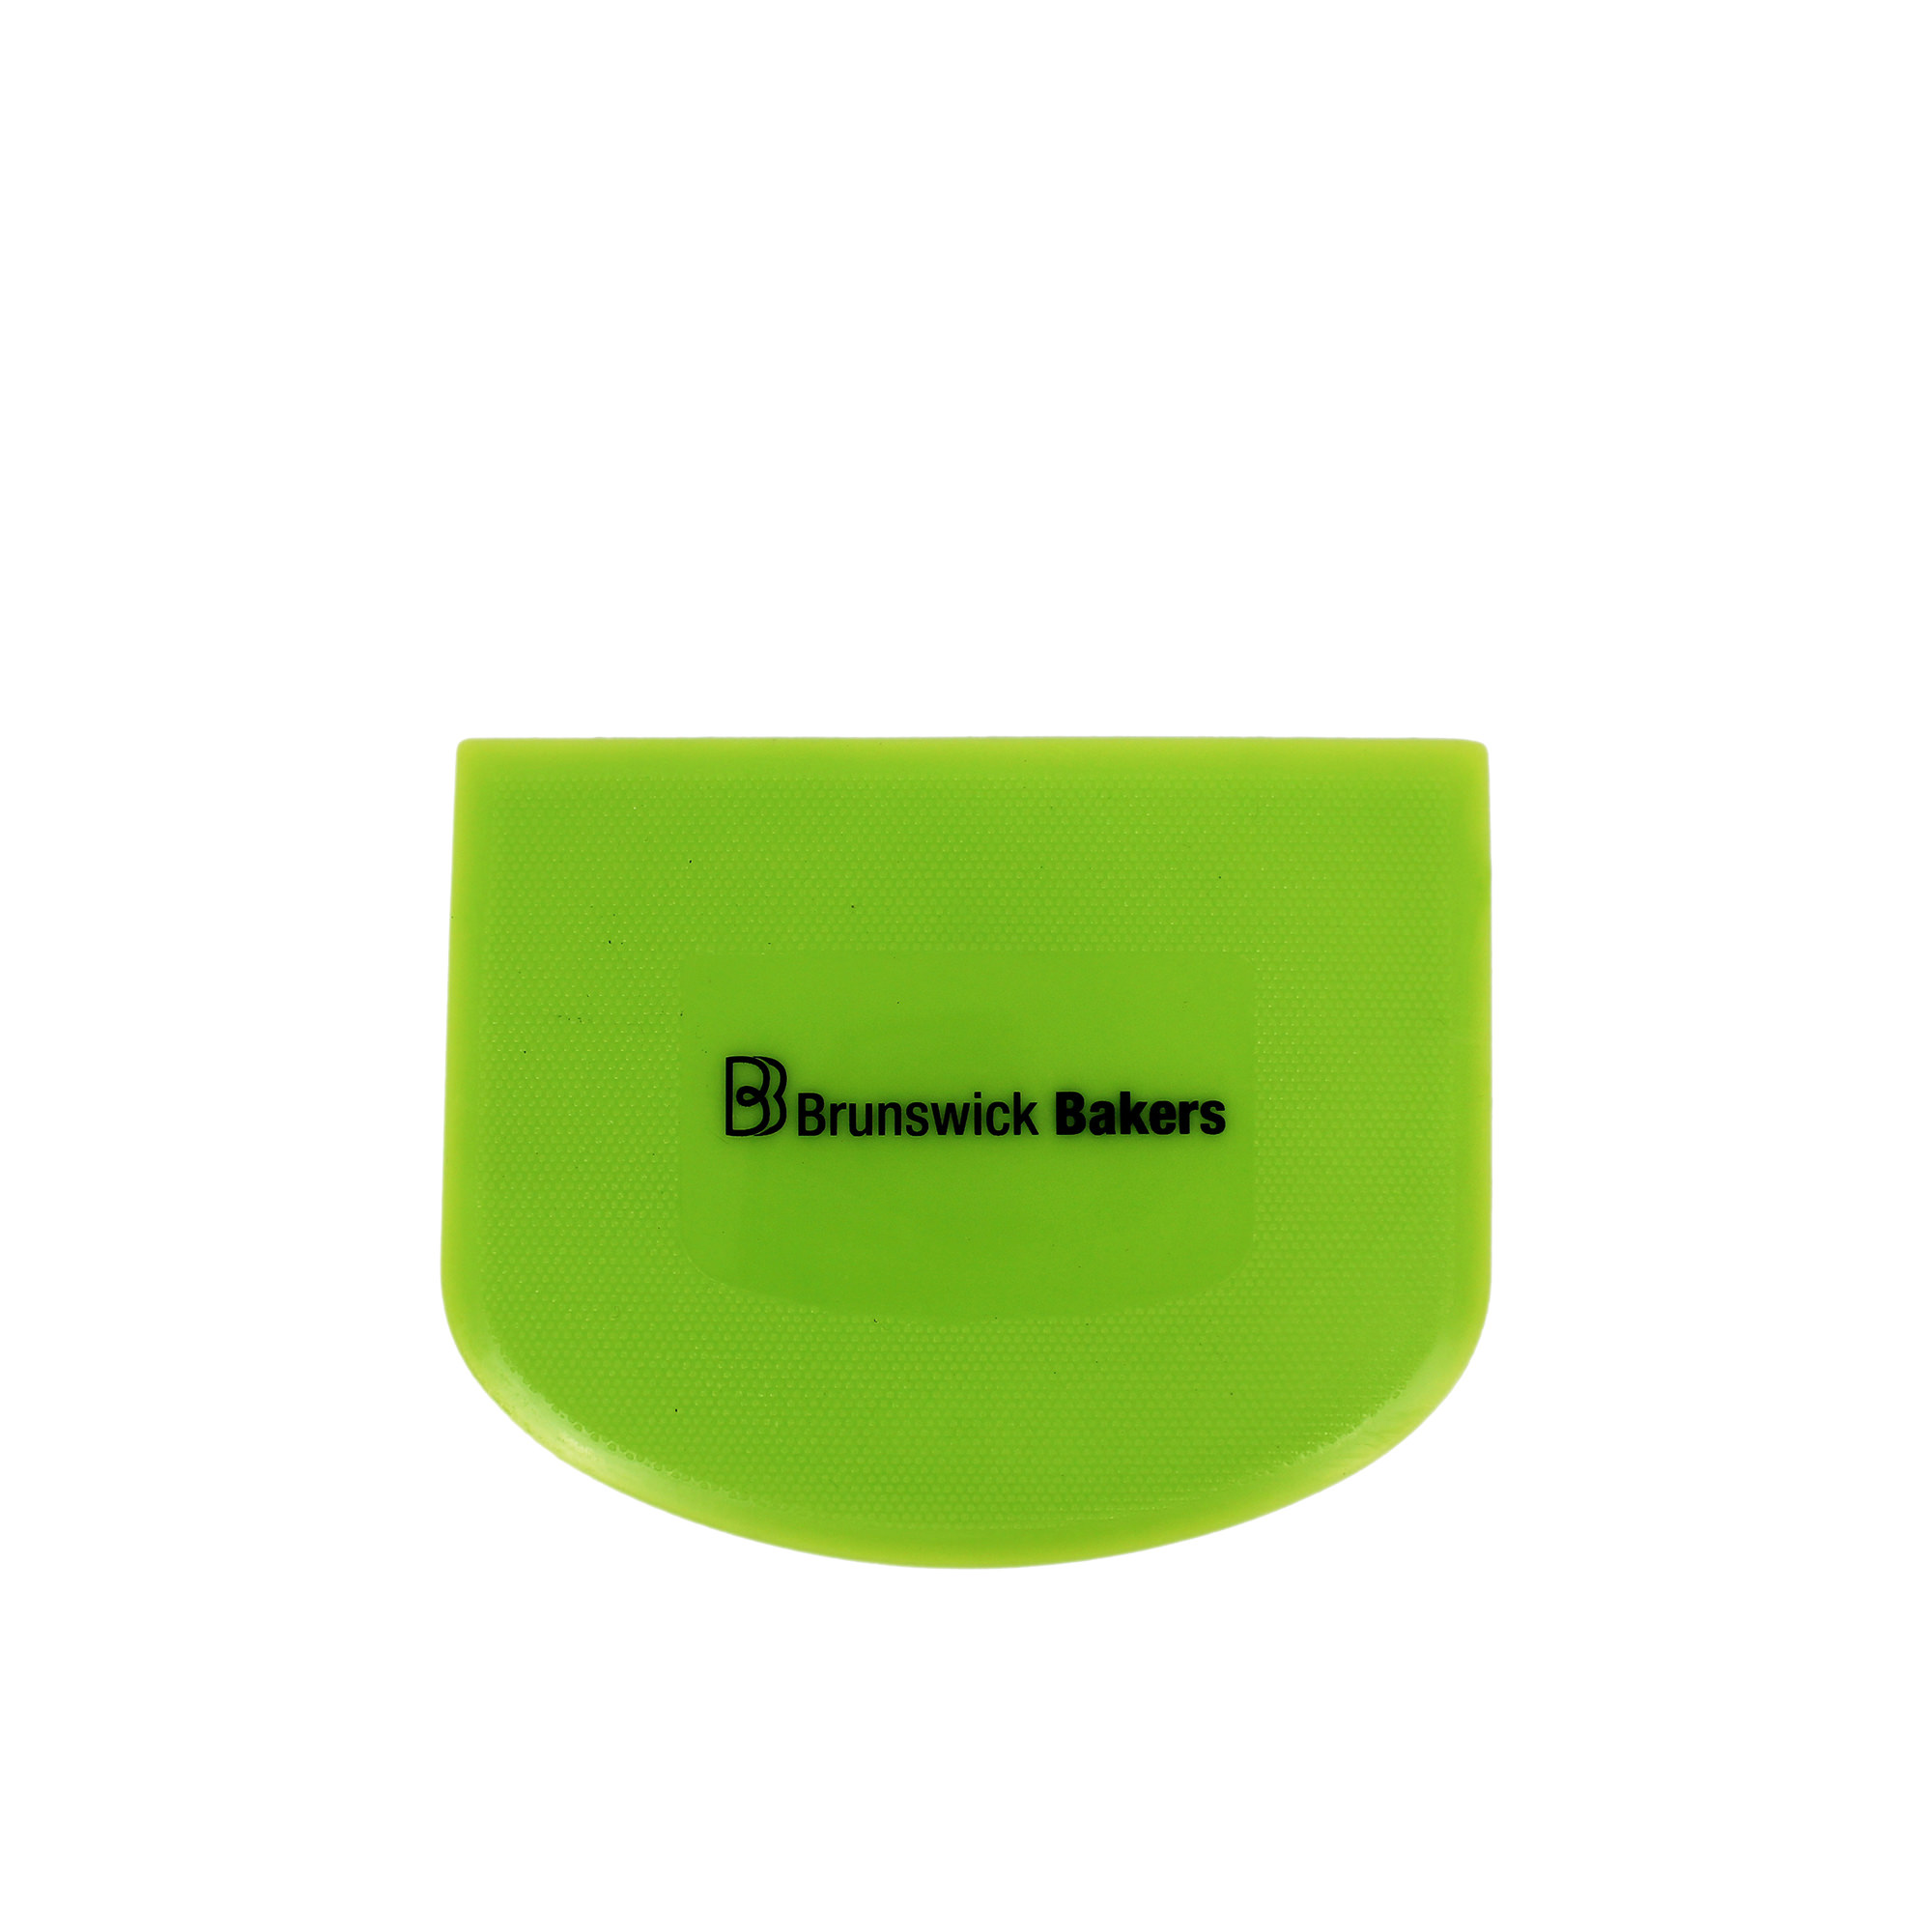 Brunswick Bakers Dough Scraper 11.8x9.3cm Green